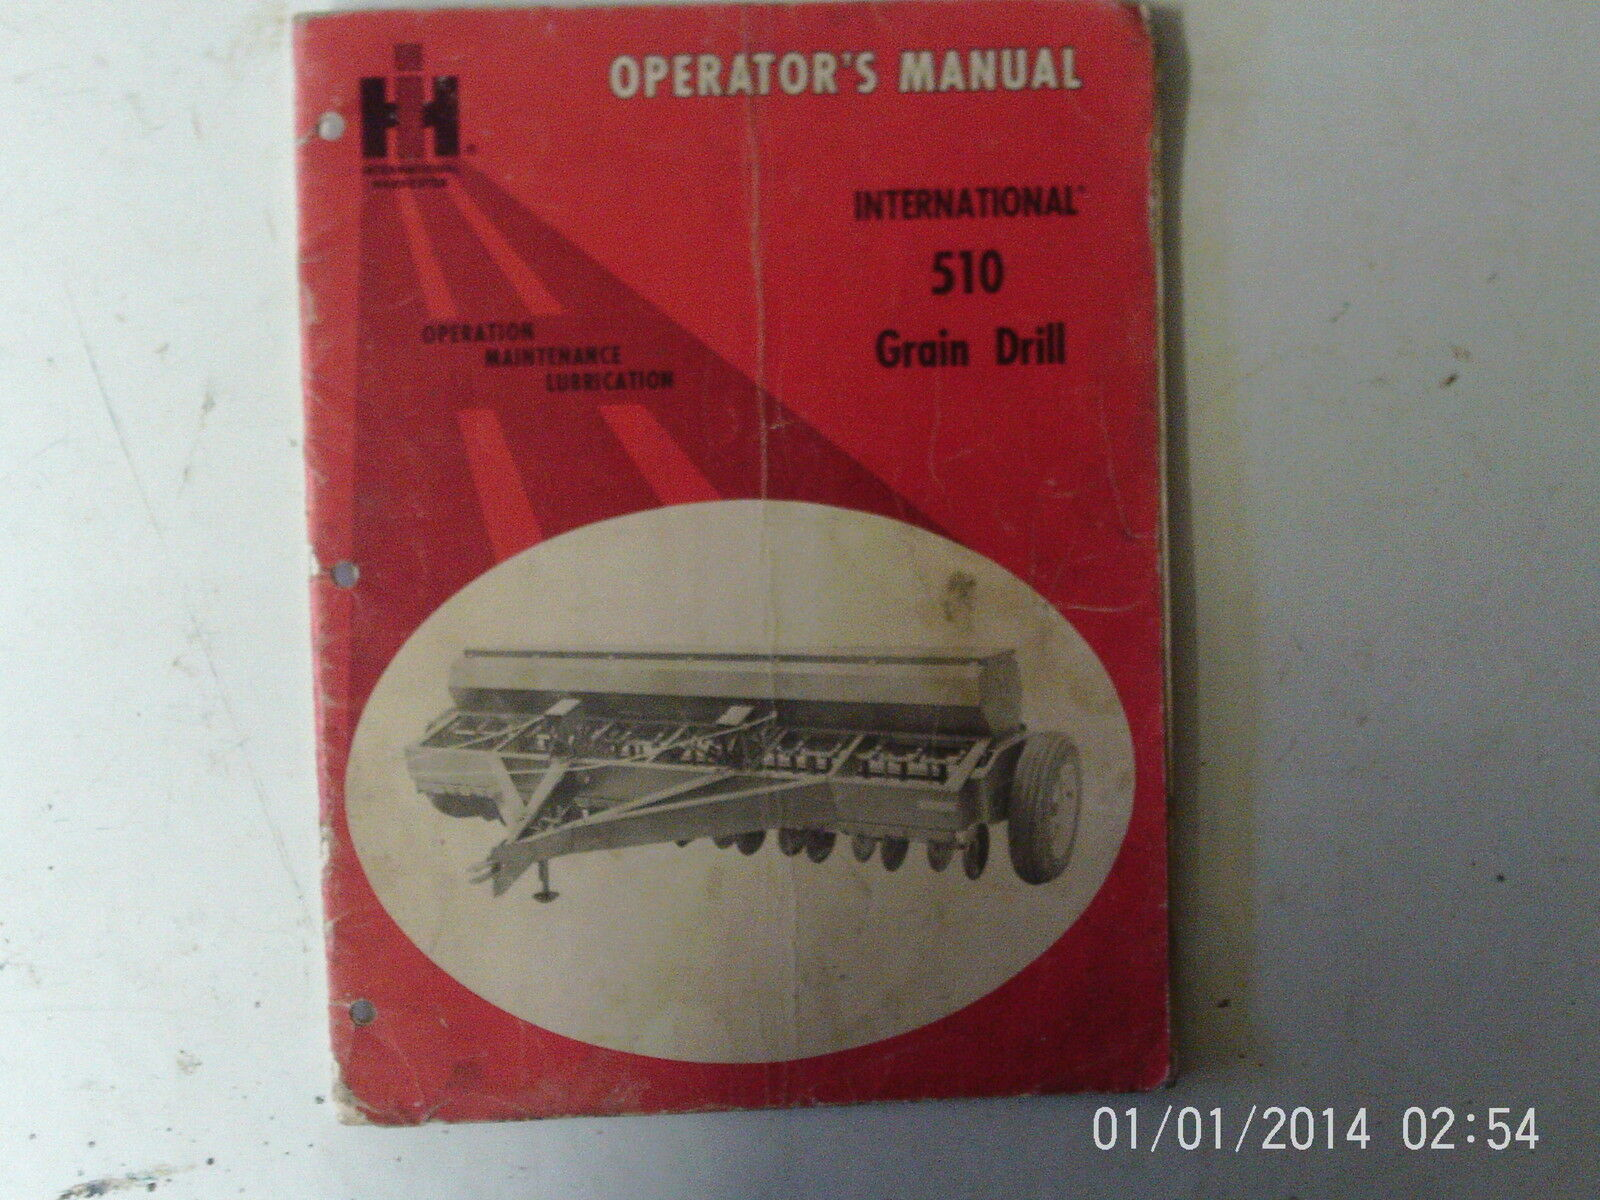 International 510 Grain Drill Operator's Manual 1 of 1Only 1 available ...